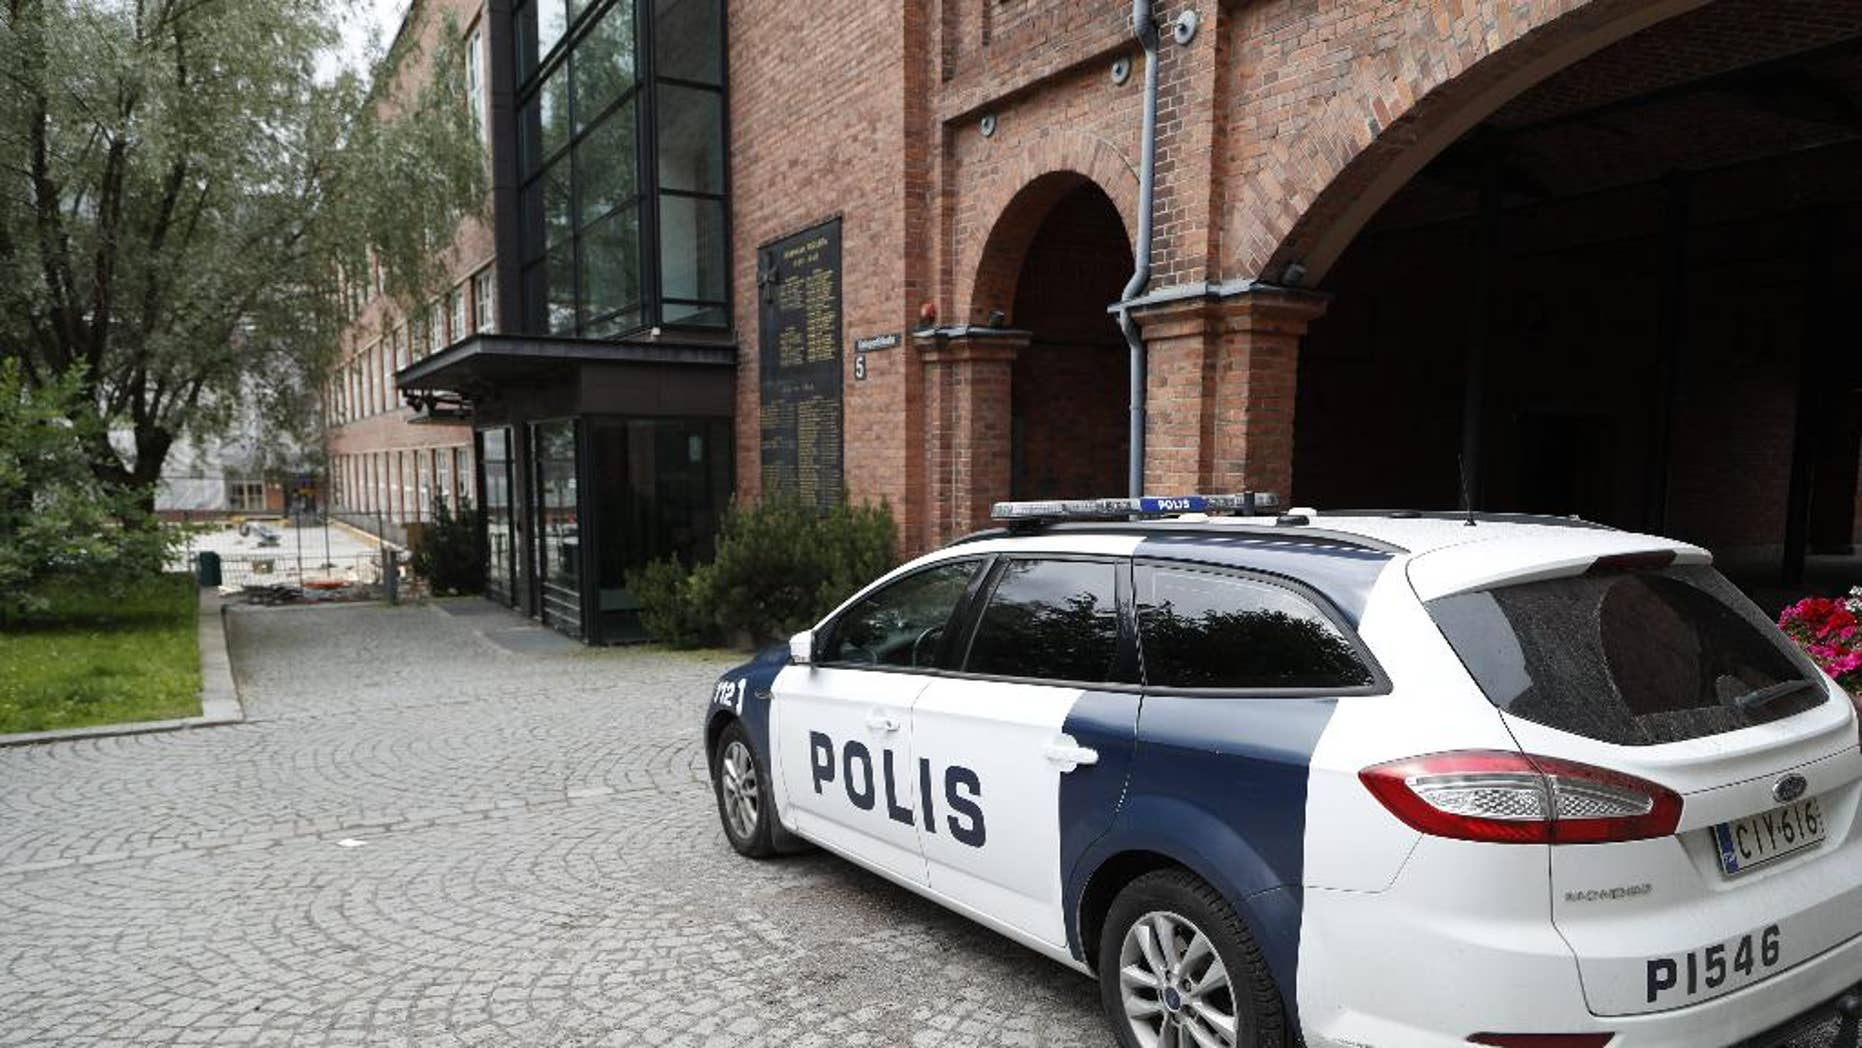 In this photo taken on Tuesday, July 5, 2016, a police car is parked outside Pirkanmaa district court in Tampere Finland. A Finnish prosecutor has charged six members of the Cuban national volleyball team with aggravated rape. Prosecutor Leena Koivuniemi says all six have denied the charges. She declined Tuesday, Aug. 16 to give further details pending the court case. Eight Cuban players were originally arrested following allegations that a woman was raped at a hotel where the team was staying in the city of Tampere. Two were later released. (Kalle Parkkinen/Lehtikuva via AP)